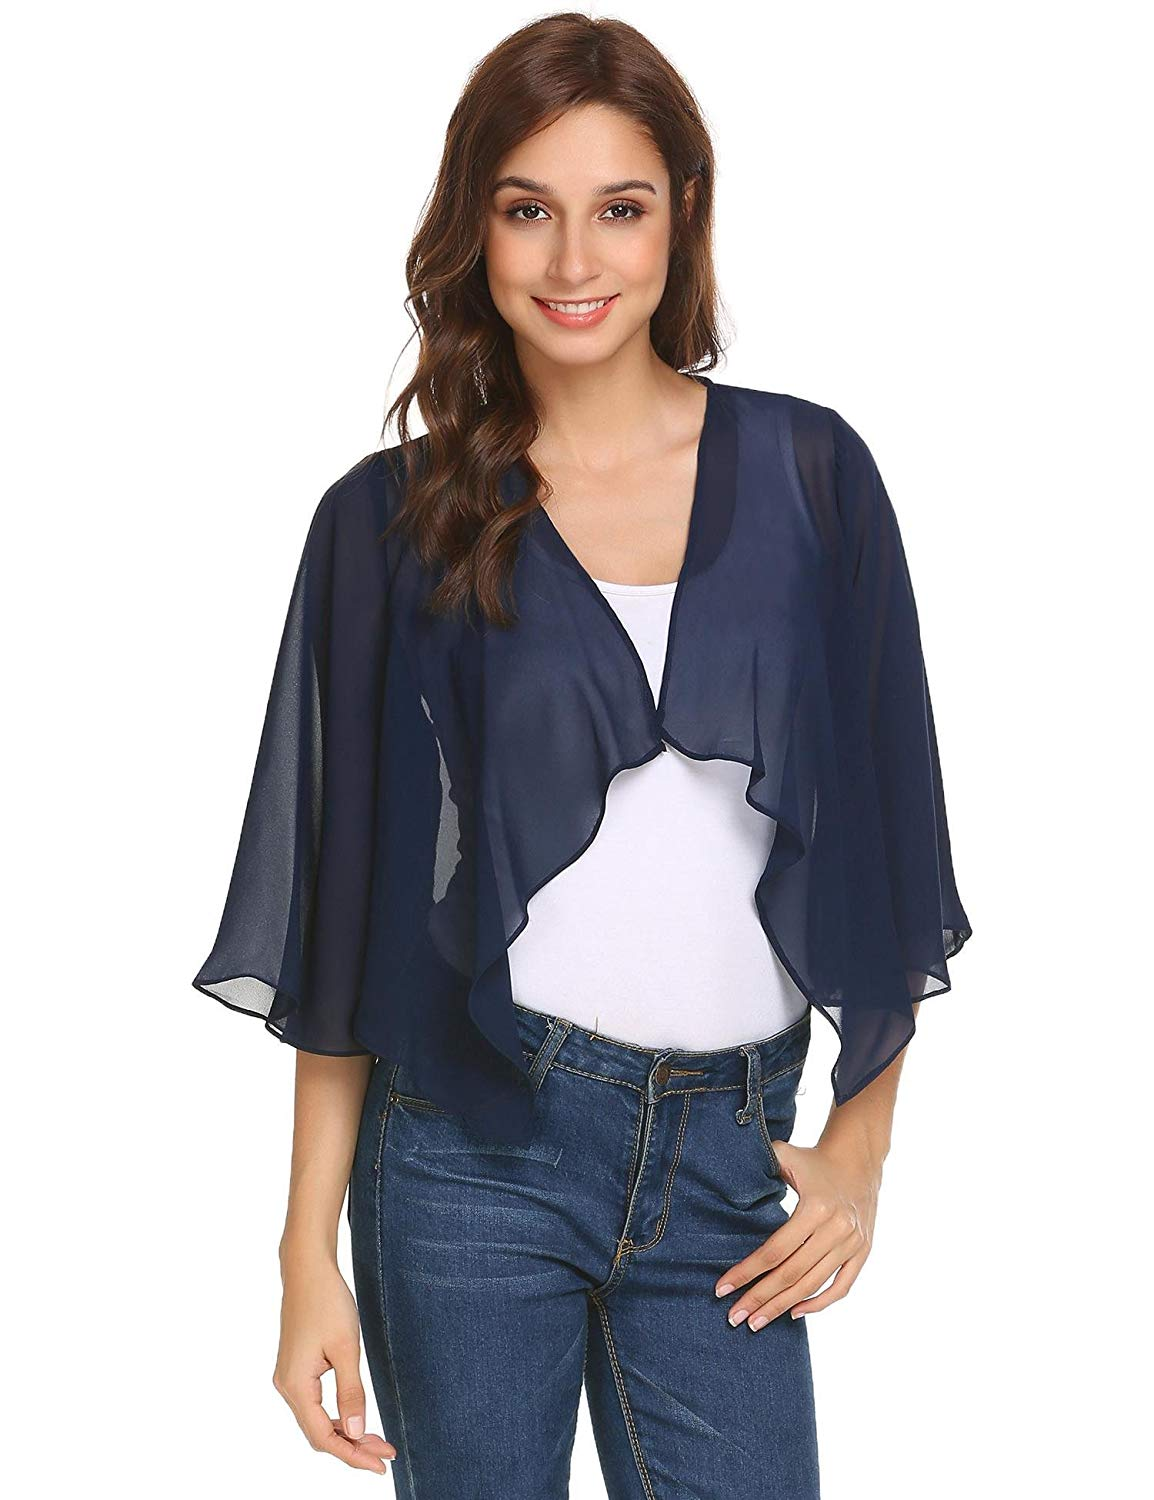 22b594333c2e4 Get Quotations · Pinspark Women s Sheer Bolero Shrug Shawl Chiffon Thin  Cardigan